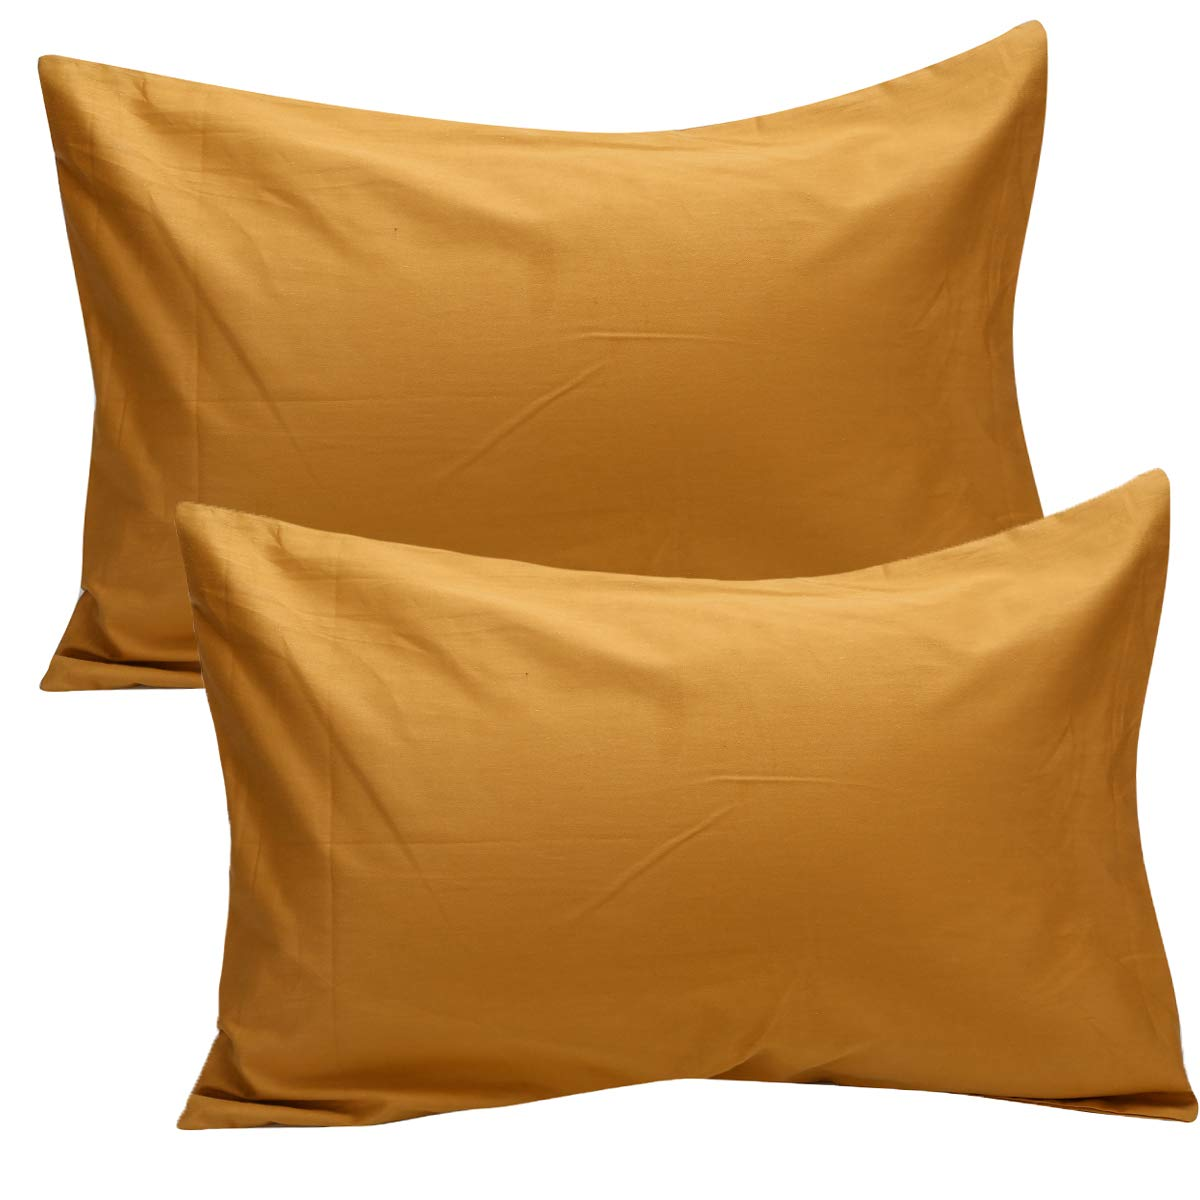 UOMNY Kid Pillowcases 2 Pack 100% Cotton Pillow Cover 14x20 Baby Pillow Cases for Sleeping Tiny Pillows case for Kids Solid Pillowcases Travel Pillowcases Ginger Yellow Kids' Pillowcases